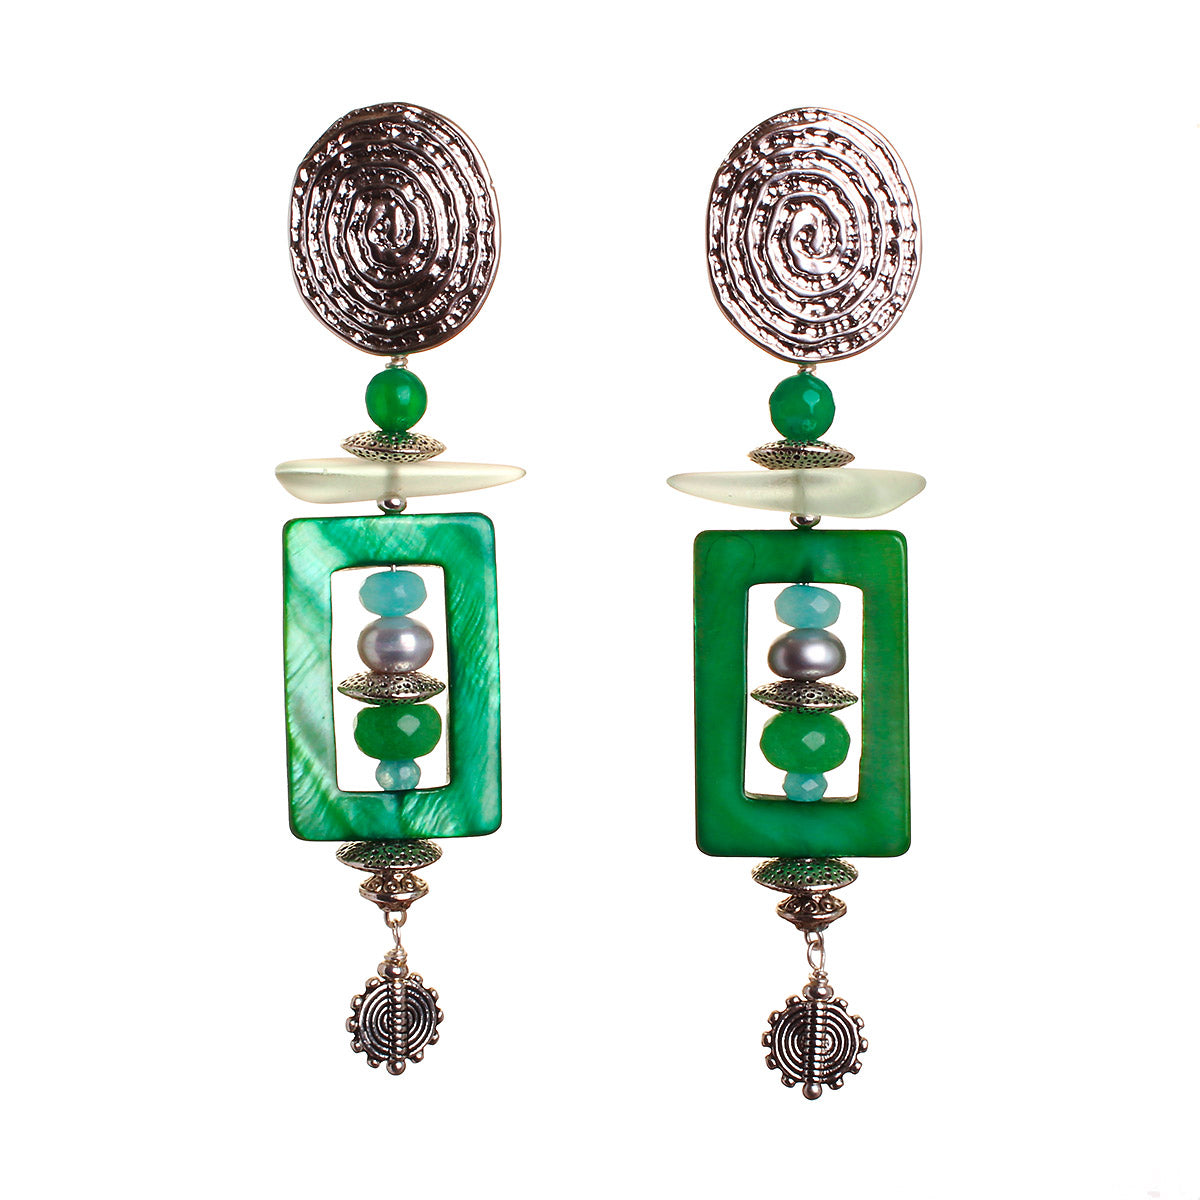 N°476 The Emerald Ink Wunderkind Statement Earrings Statement Earrings